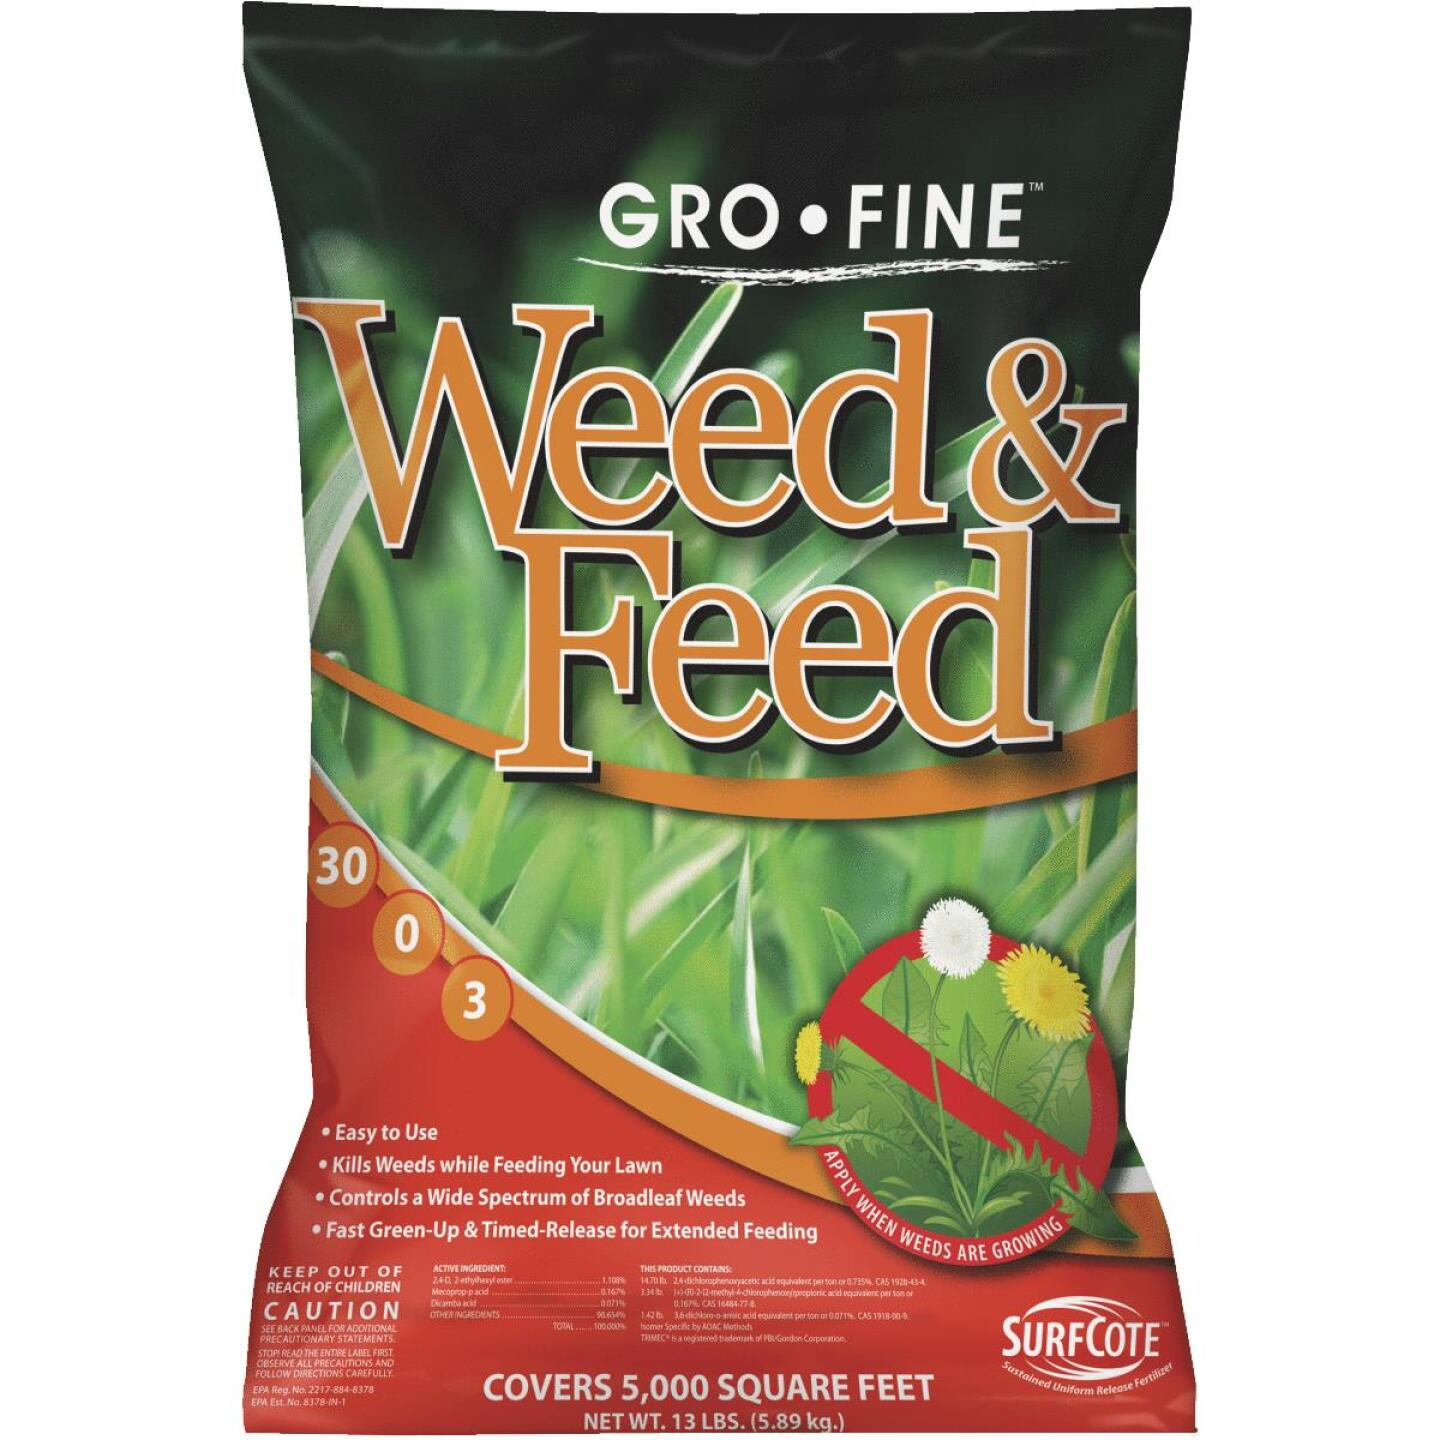 Gro-Fine Weed & Feed 13 Lb. 5000 Sq. Ft. 30-0-3 Lawn Fertilizer with Weed Killer Image 2